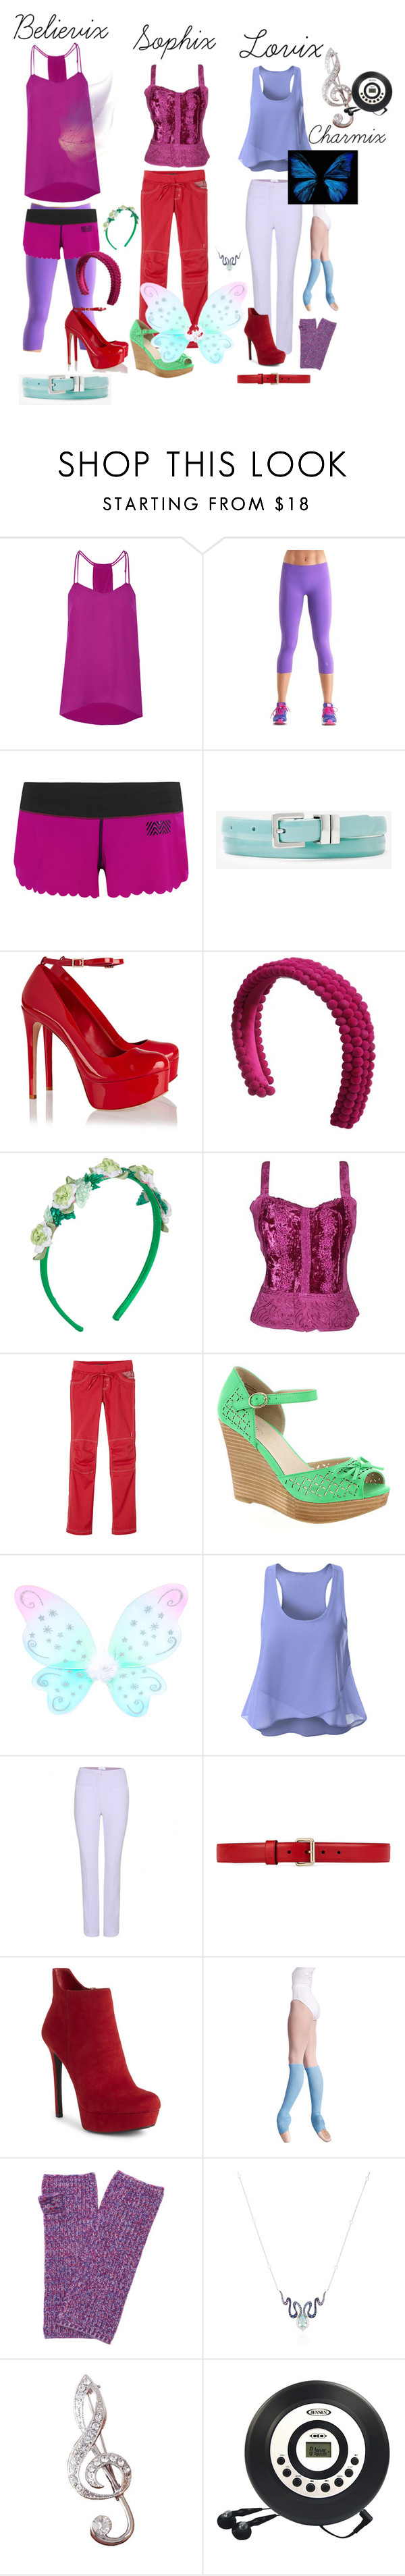 """""""Musa 2"""" by number-3 ❤ liked on Polyvore featuring Rebecca Minkoff, Lupo, Monreal, White House Black Market, Schutz, prAna, Restricted, claire's, Carven and Gucci"""